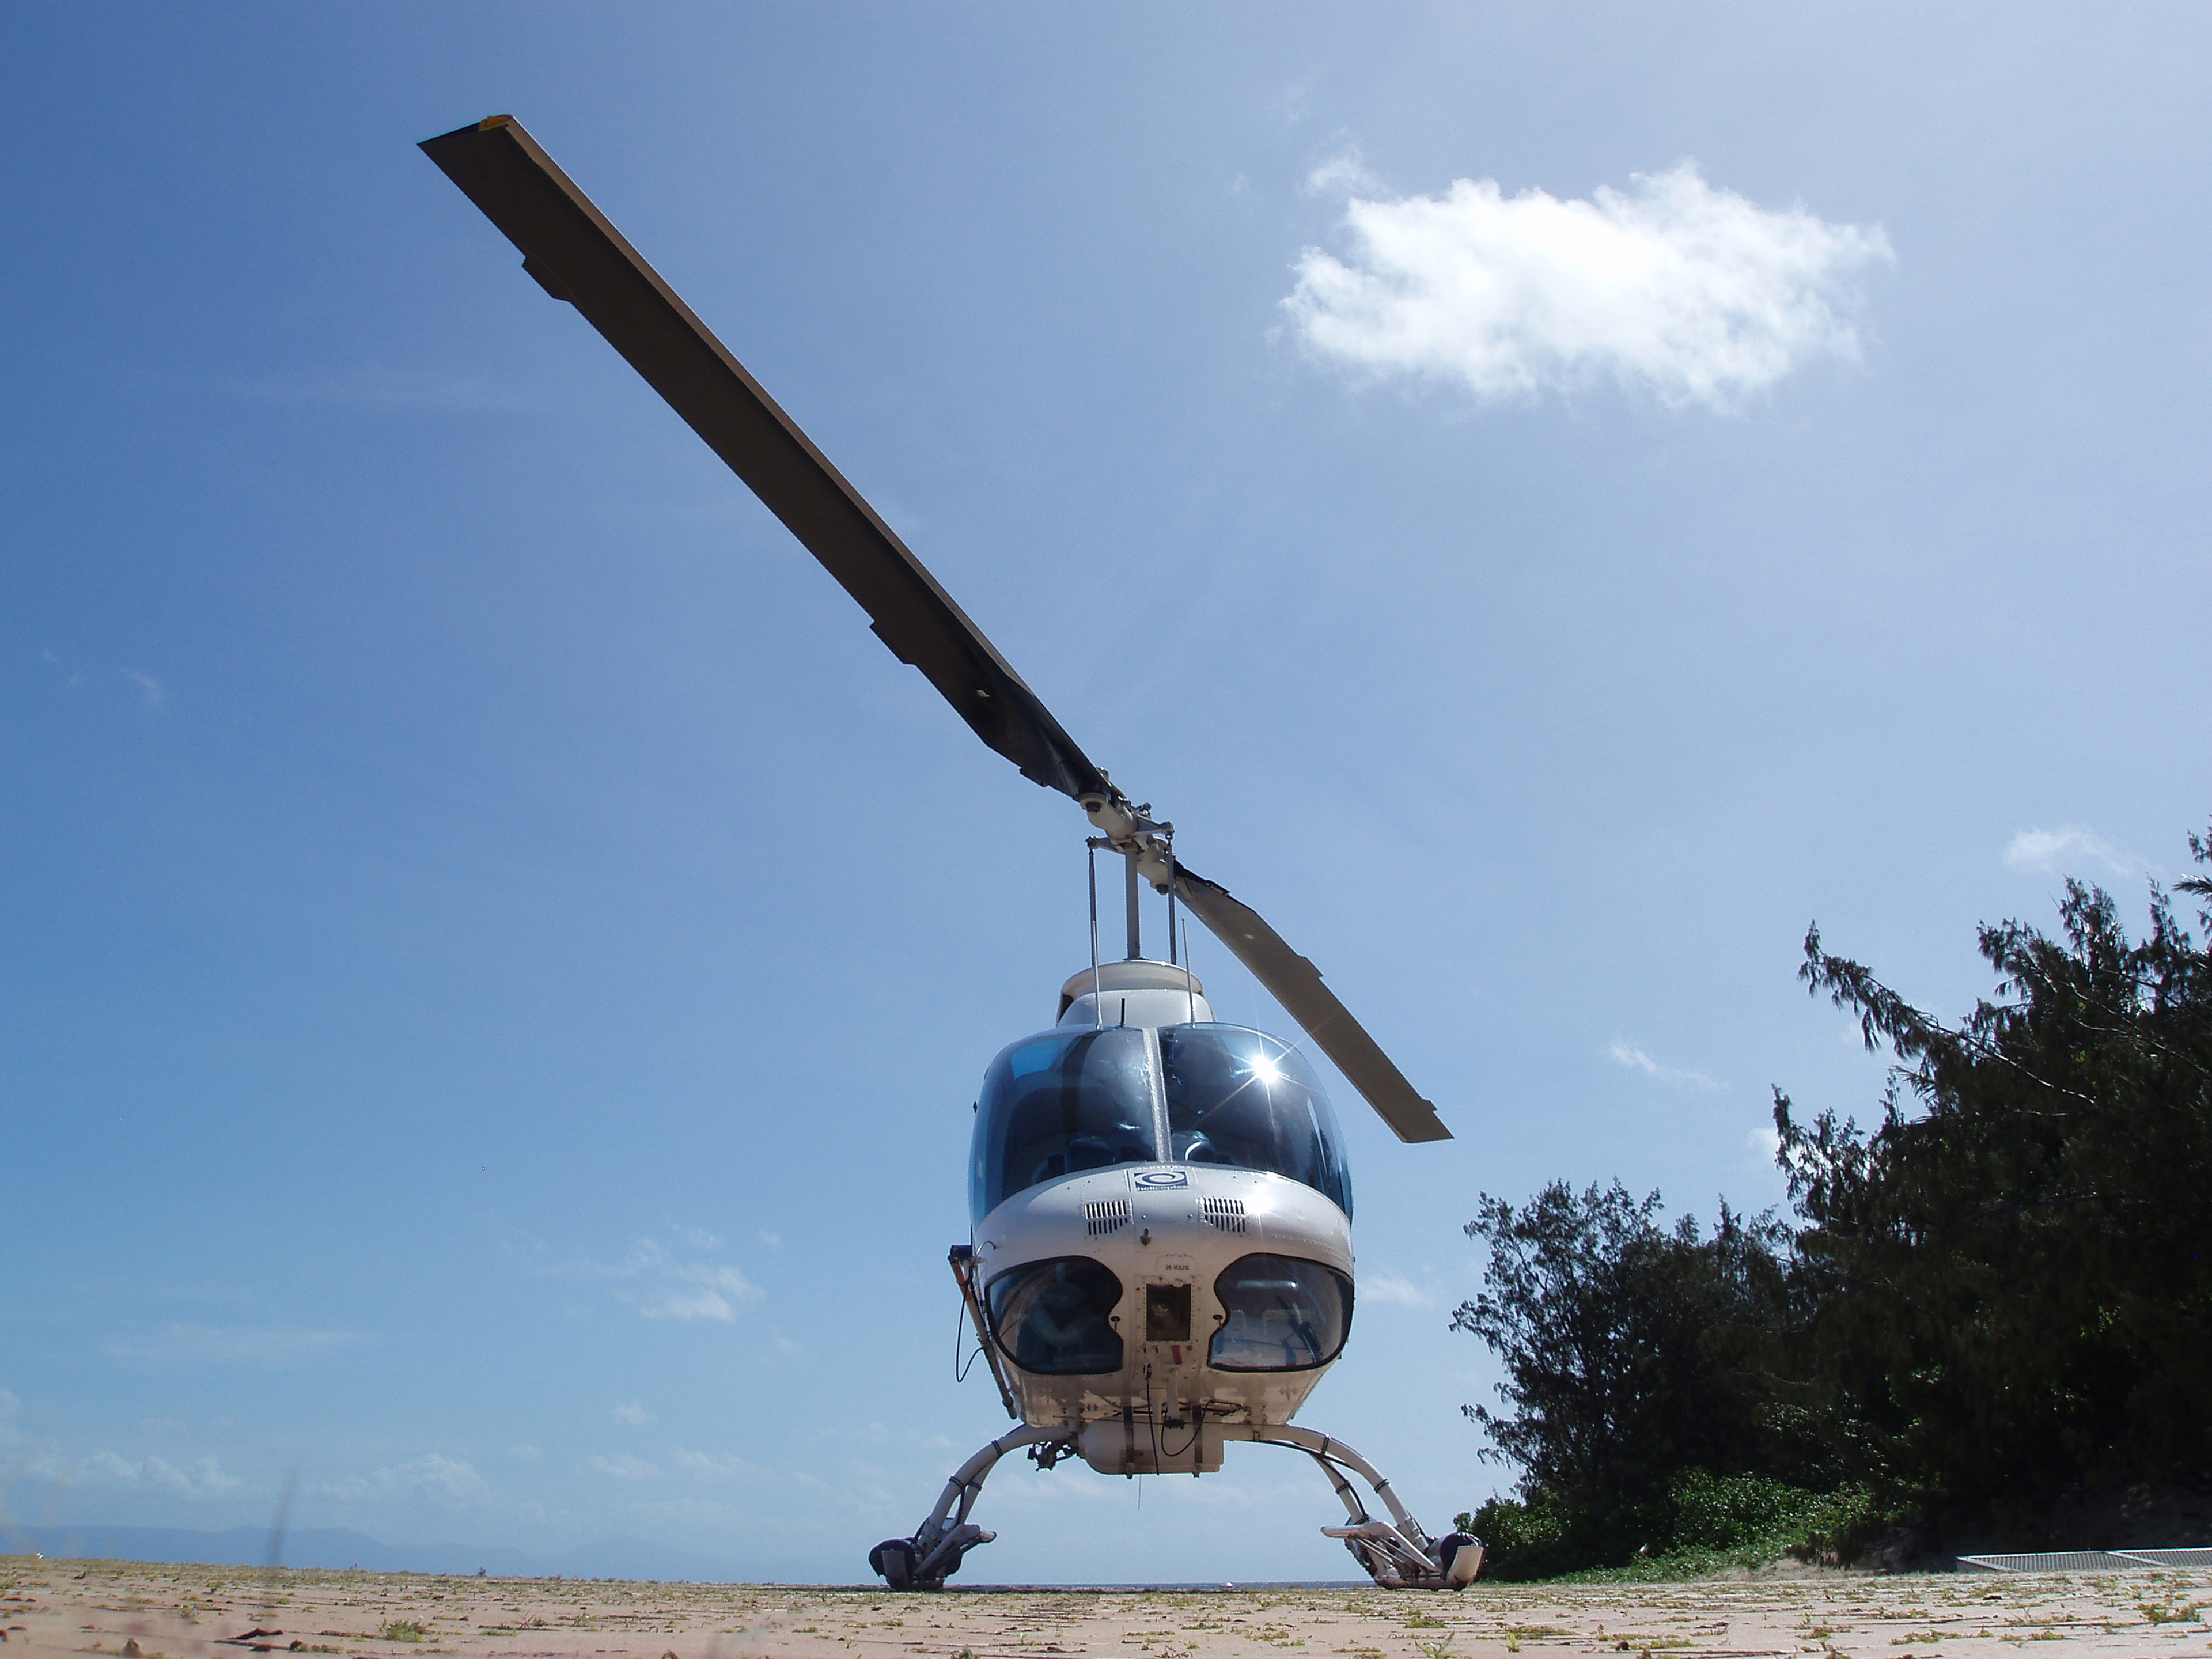 Low Angle View of Landed Helicopter on Ground with Sunny Blue Sky